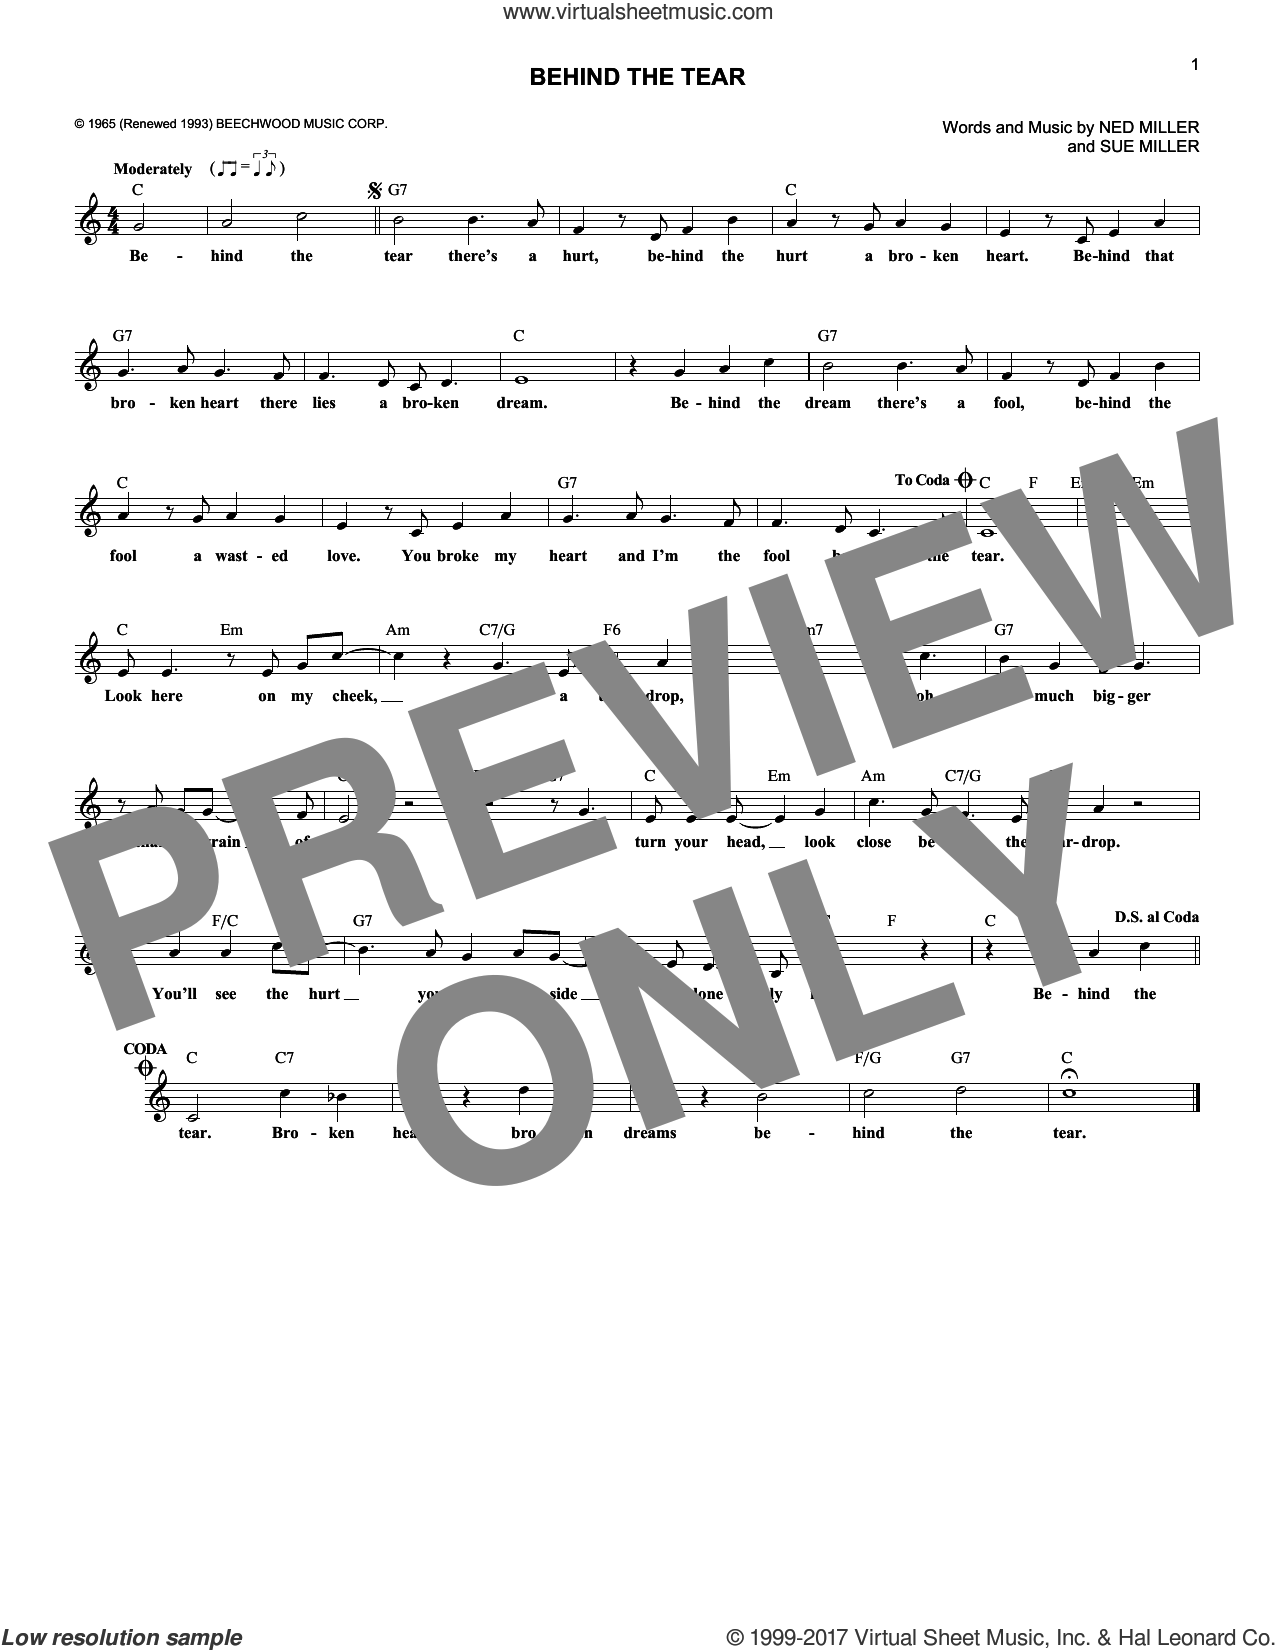 Behind The Tear sheet music for voice and other instruments (fake book) by Sonny James, Ned Miller and Sue Miller, intermediate skill level